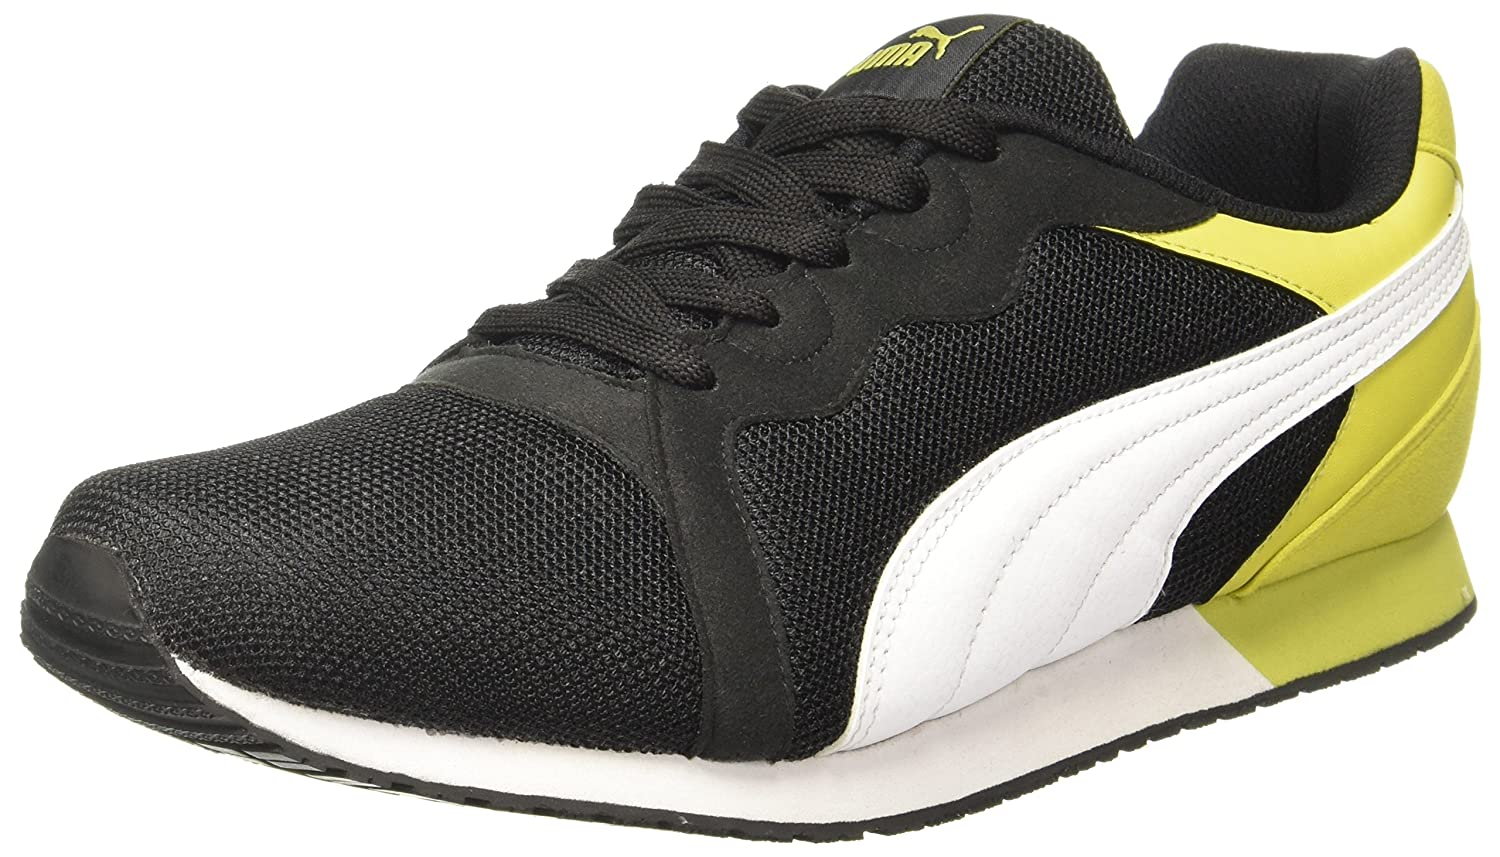 d4f8f2f0ef1 Puma Men s Pacer Sneakers  Buy Online at Low Prices in India - Amazon.in